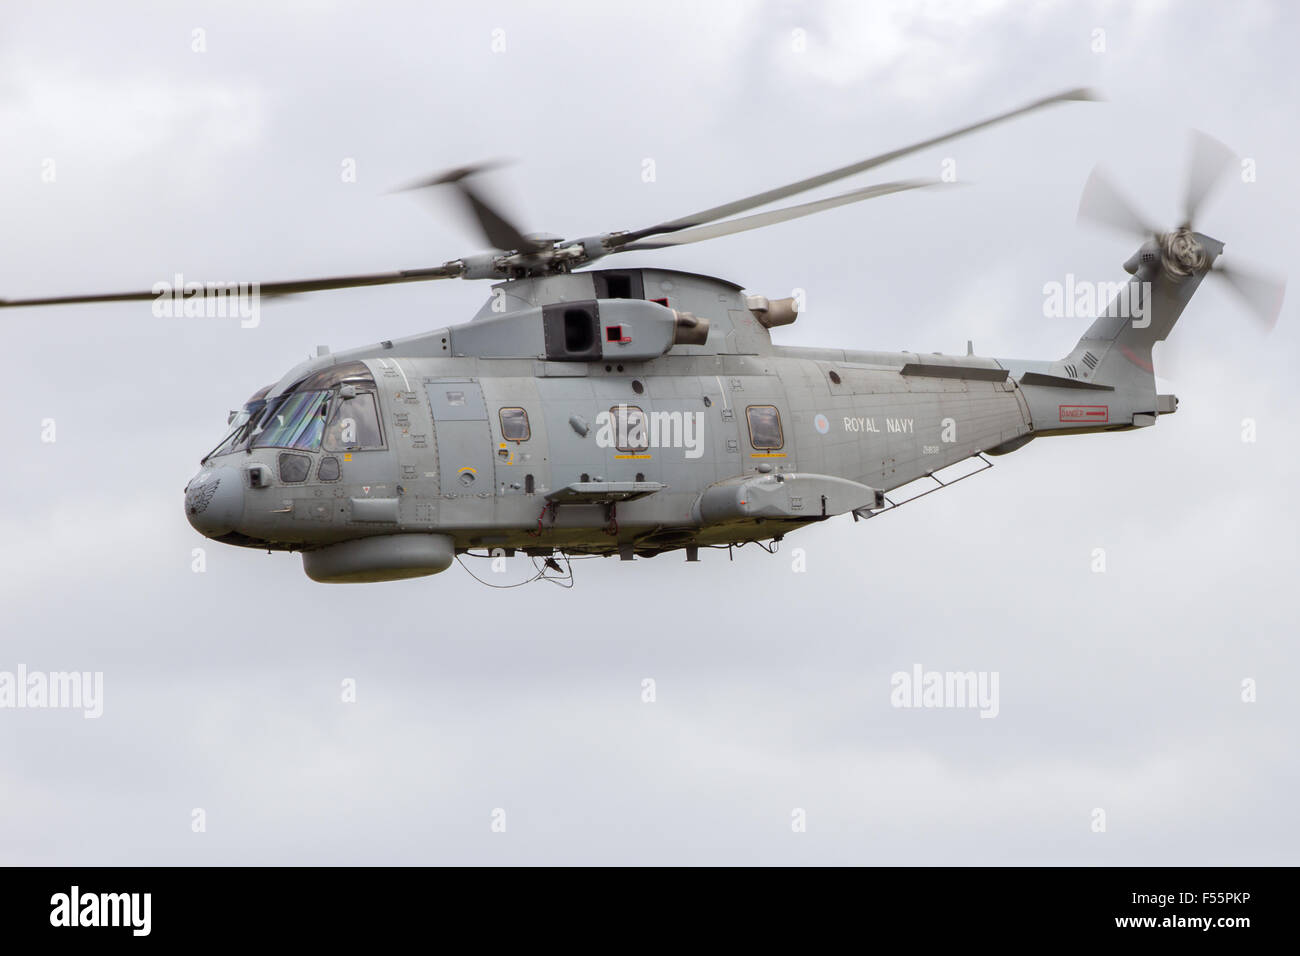 UK Royal Navy Merlin helicopter flying during the NATO Tiger Meet at Schleswig-Jagel airbase. - Stock Image